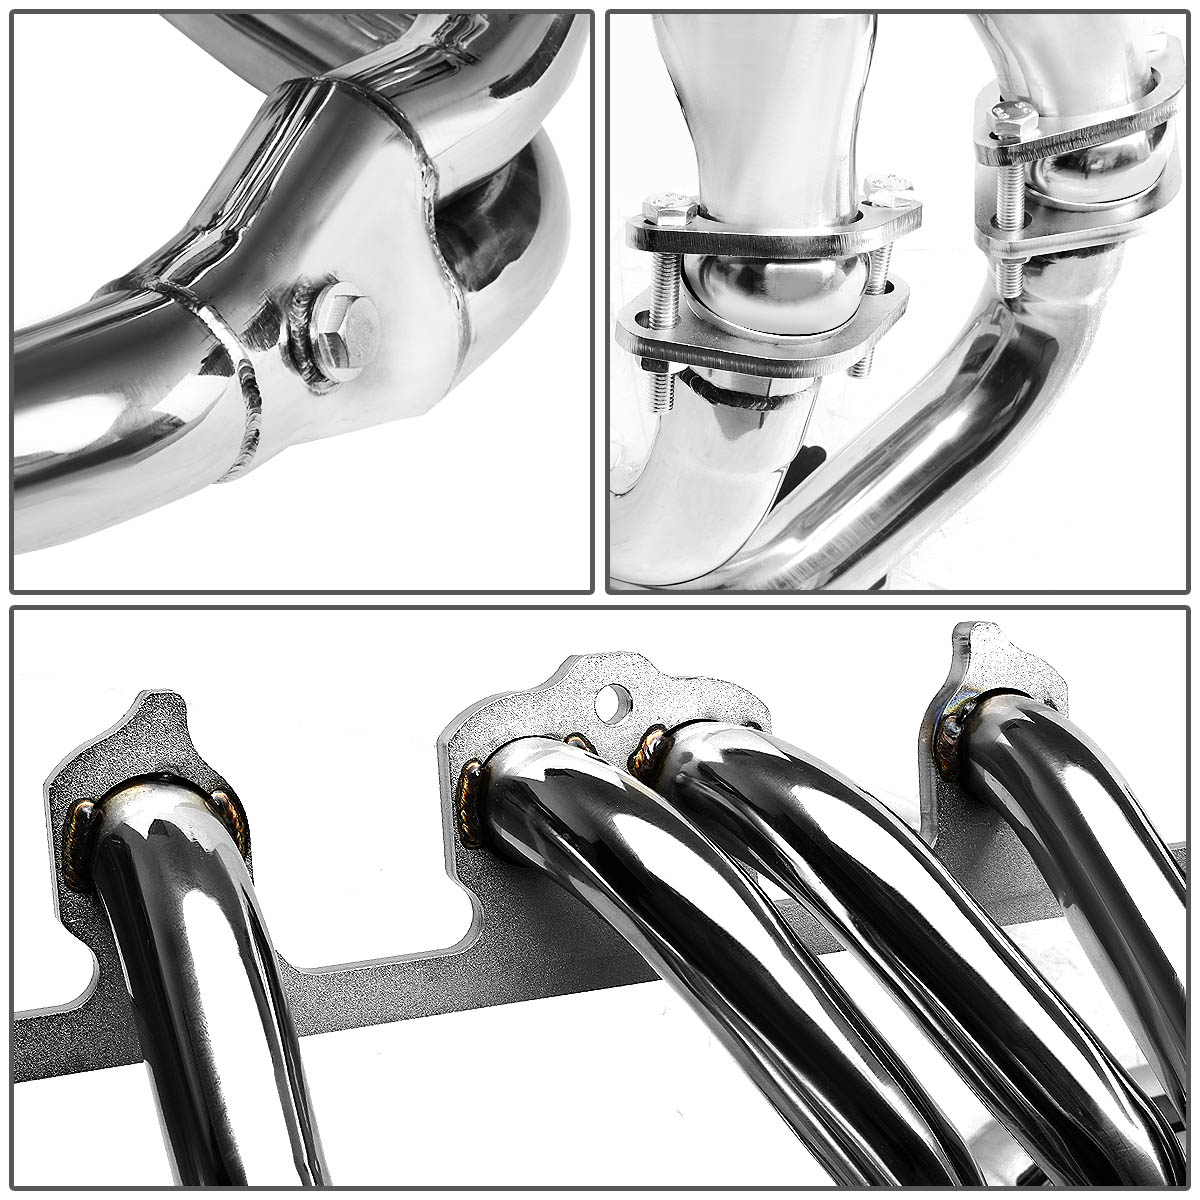 For 91-99 Jeep Cherokee XJ 4.0L Stainless Steel 4-2-1 Header Exhaust  Manifold+Y-Pipe 92 93 94 95 96 97 98 - Walmart.com